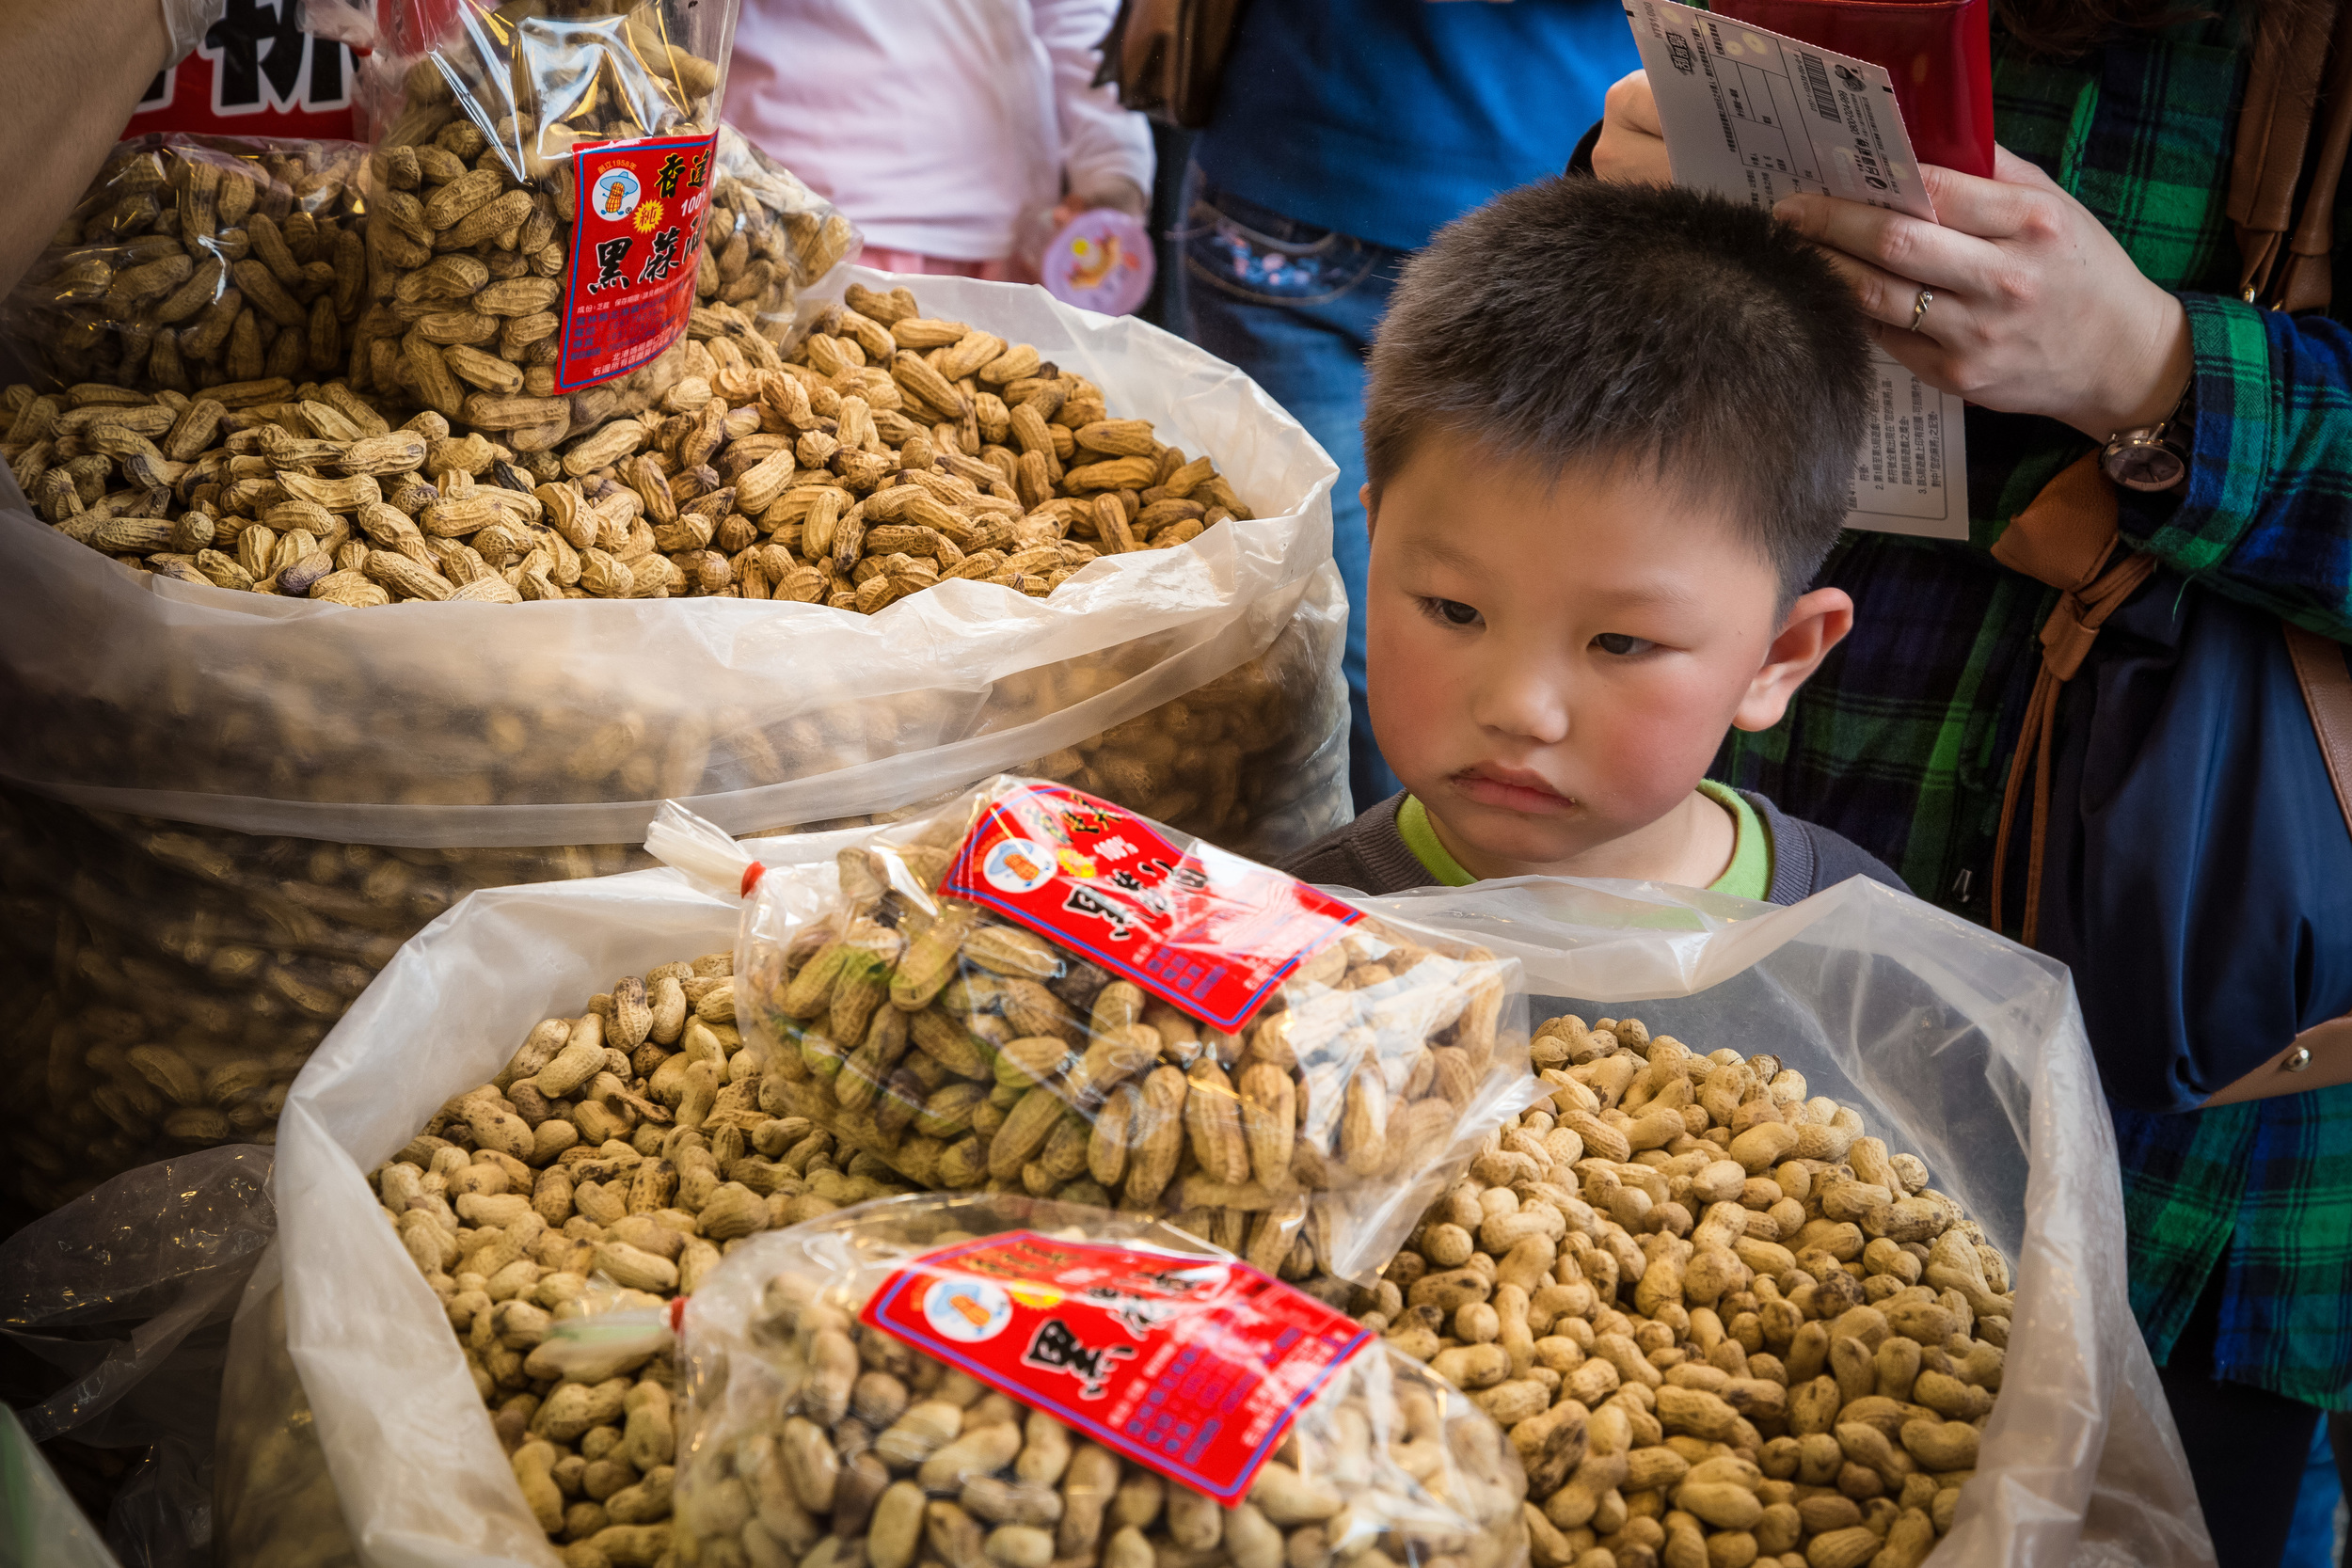 Peanuts are an important export in the area.